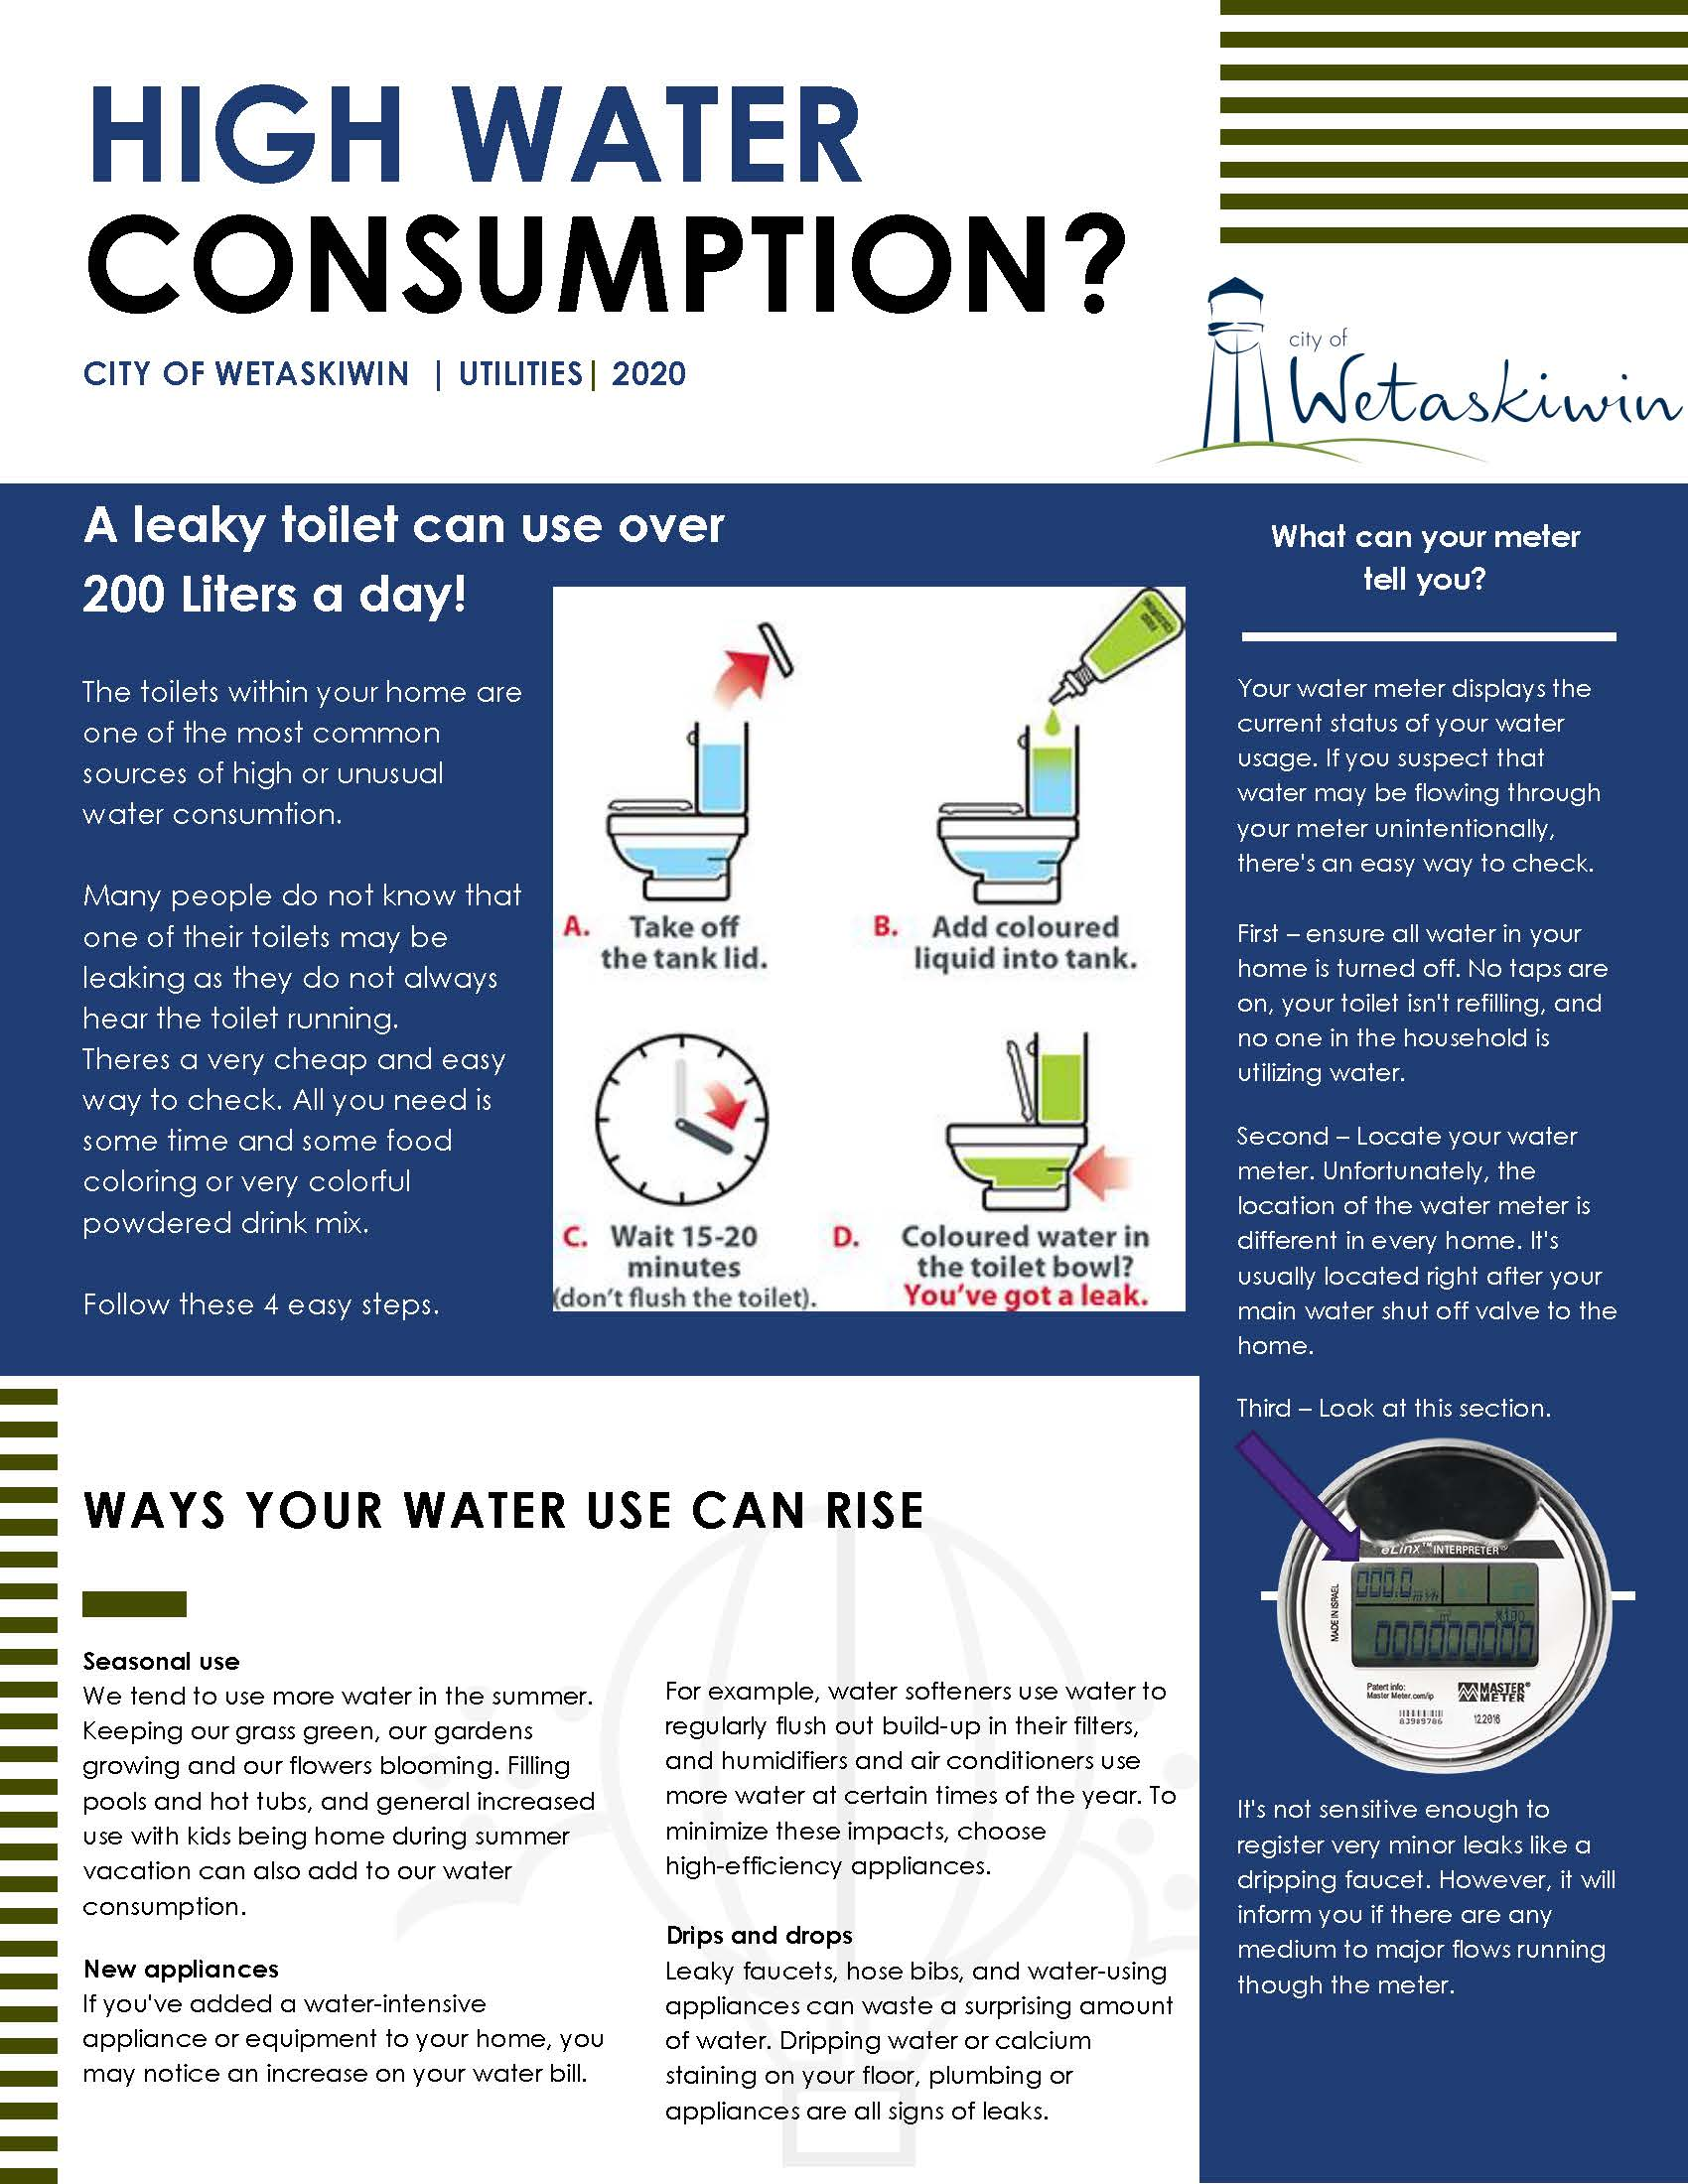 High water consumption